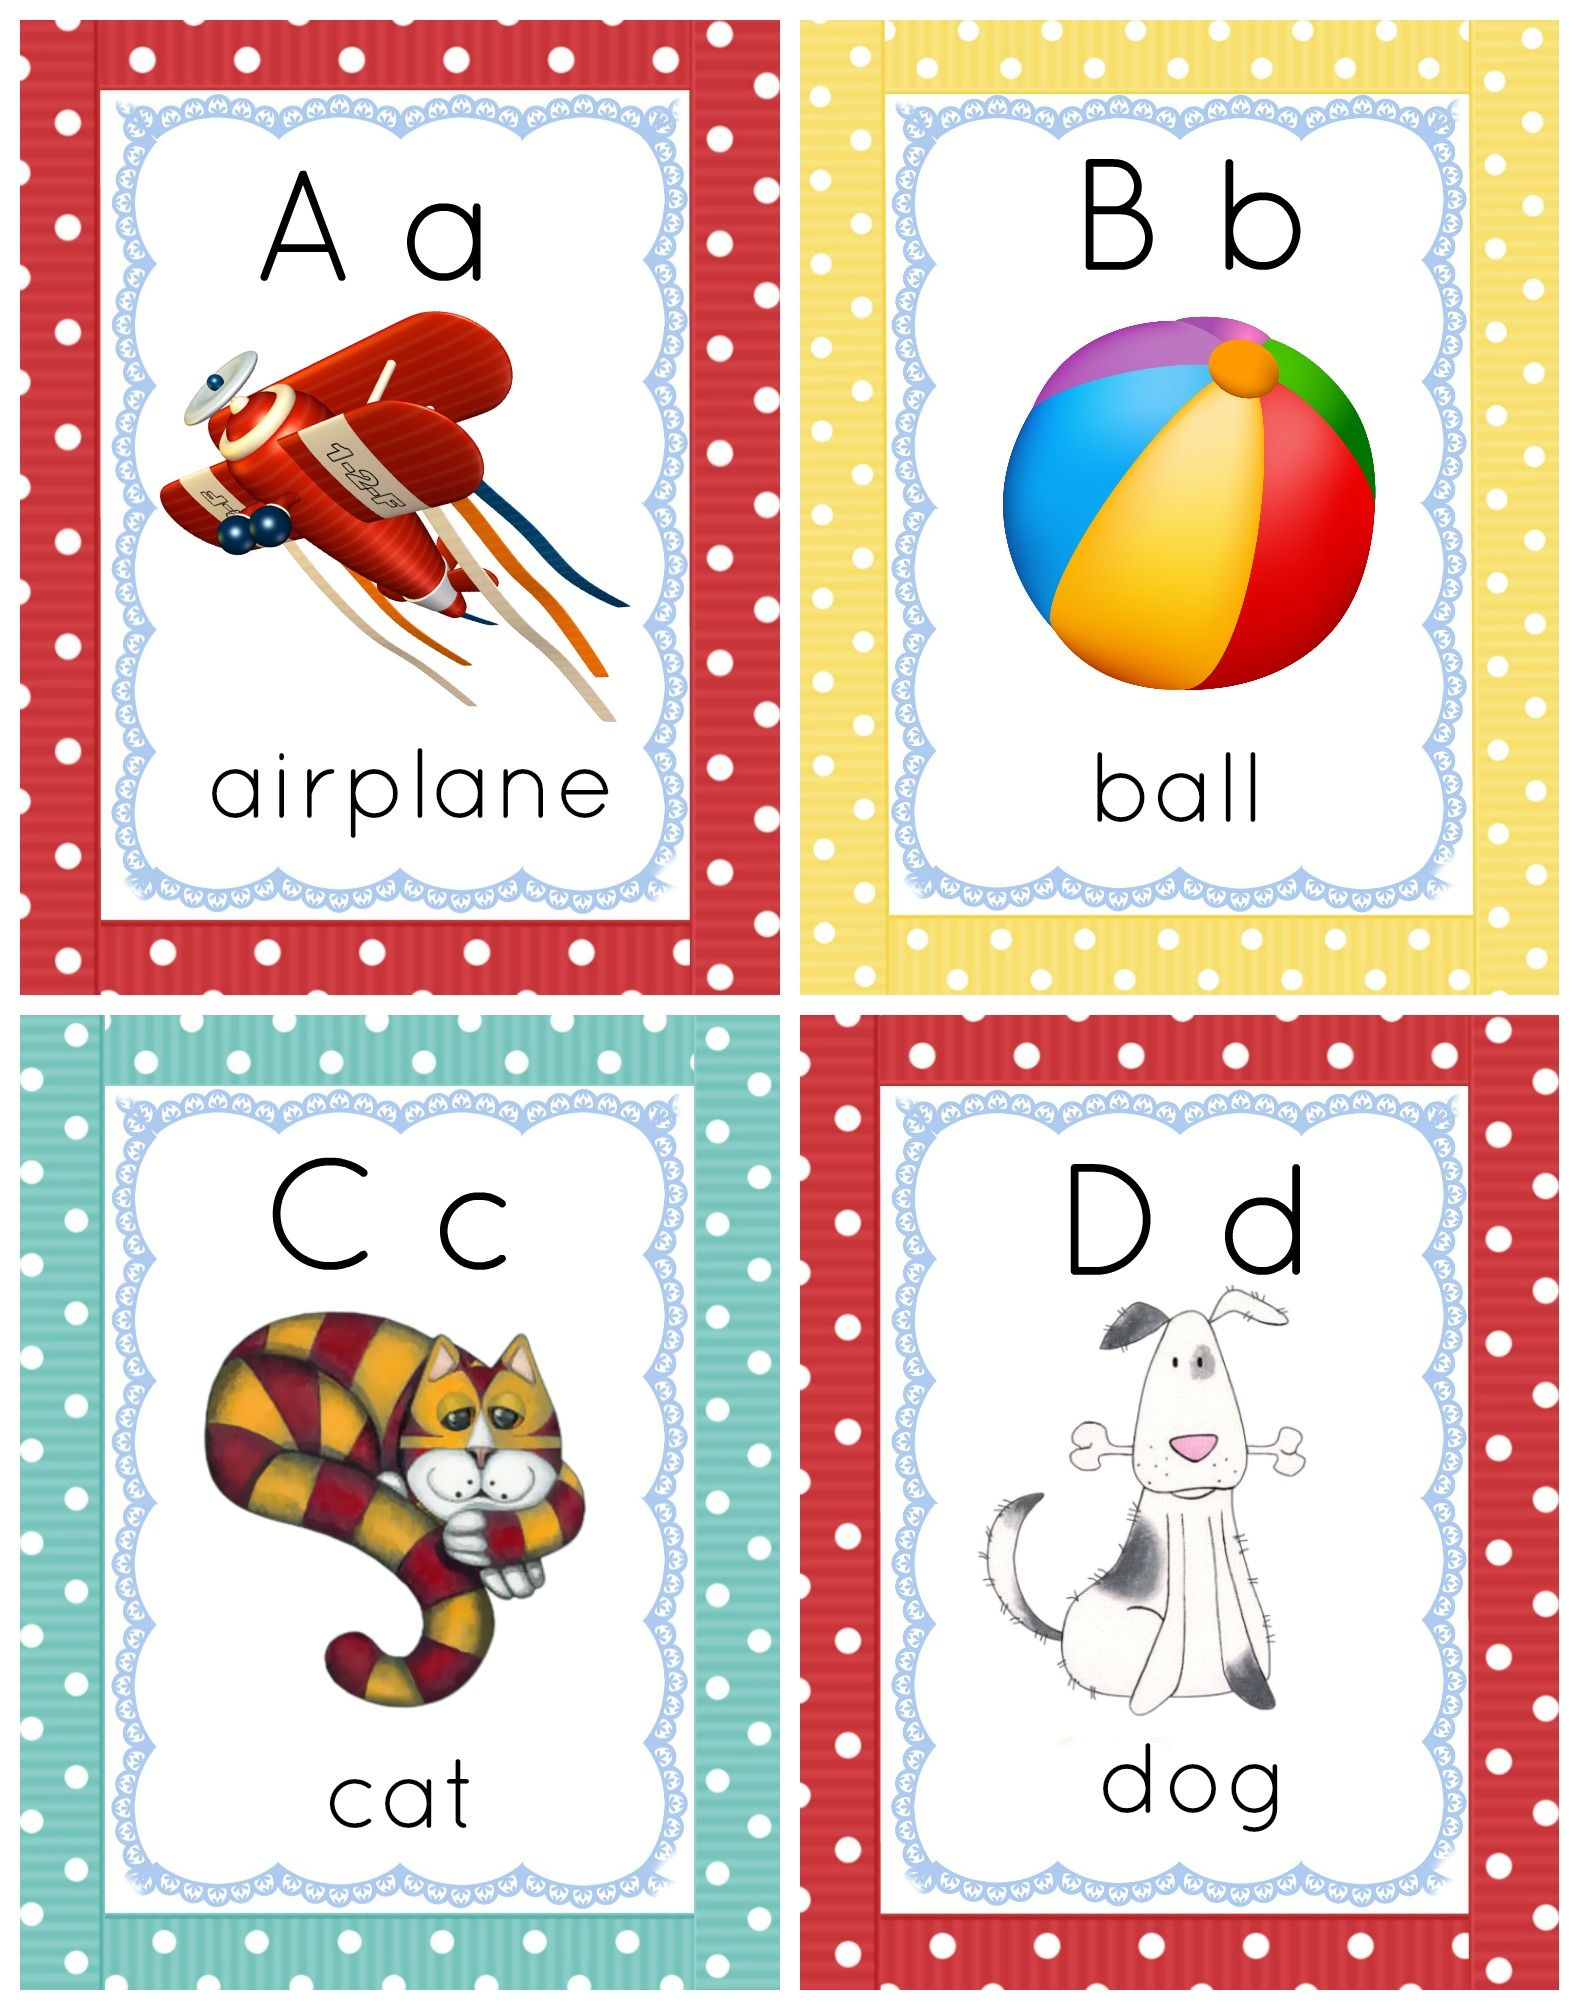 Gorgeous Colourful Abc Cards Are Great For Activities And Displaying On A Wall